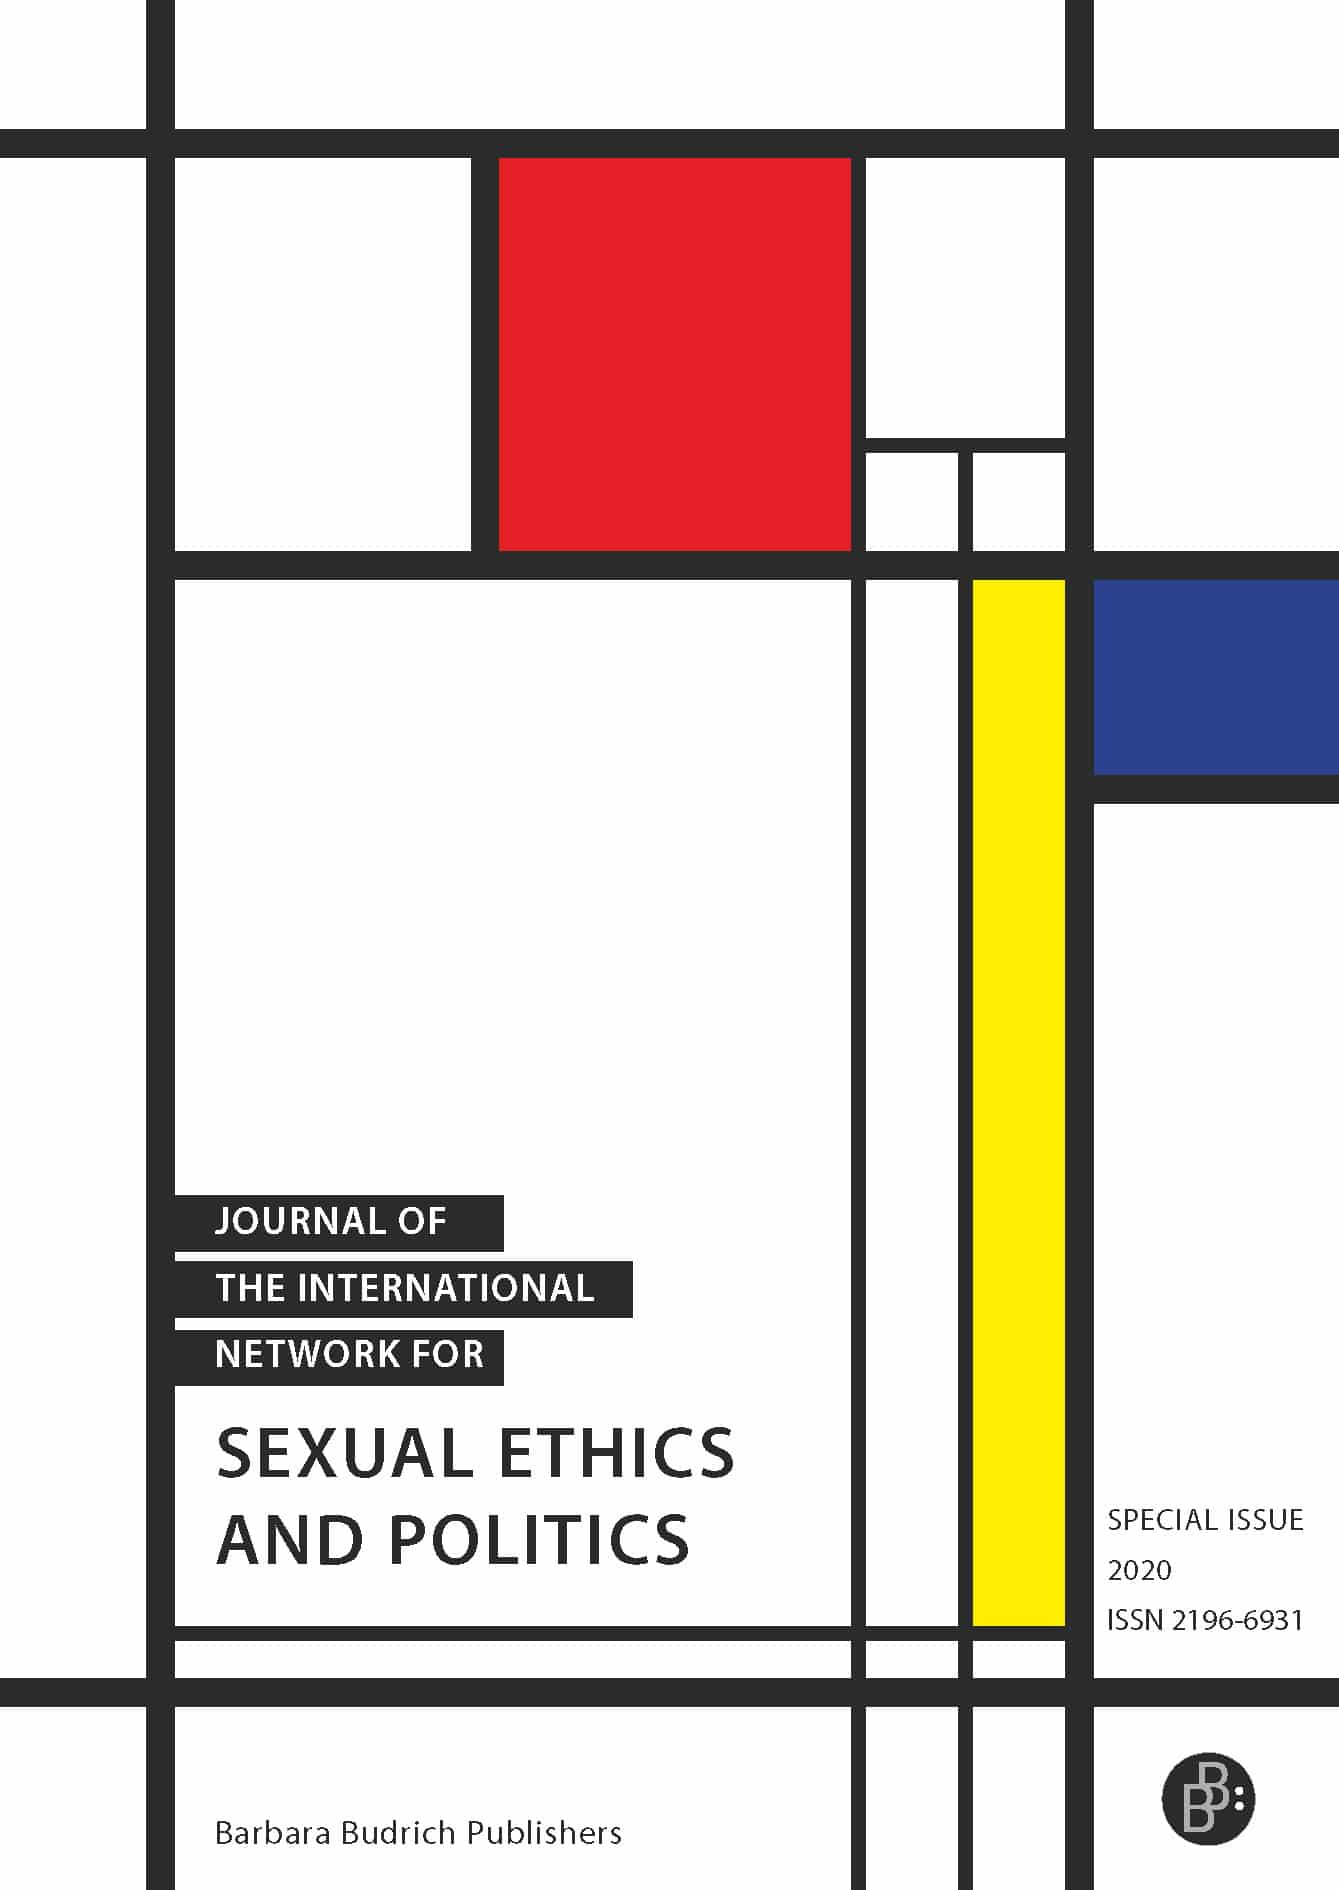 INSEP – Journal of the International Network for Sexual Ethics & Politics